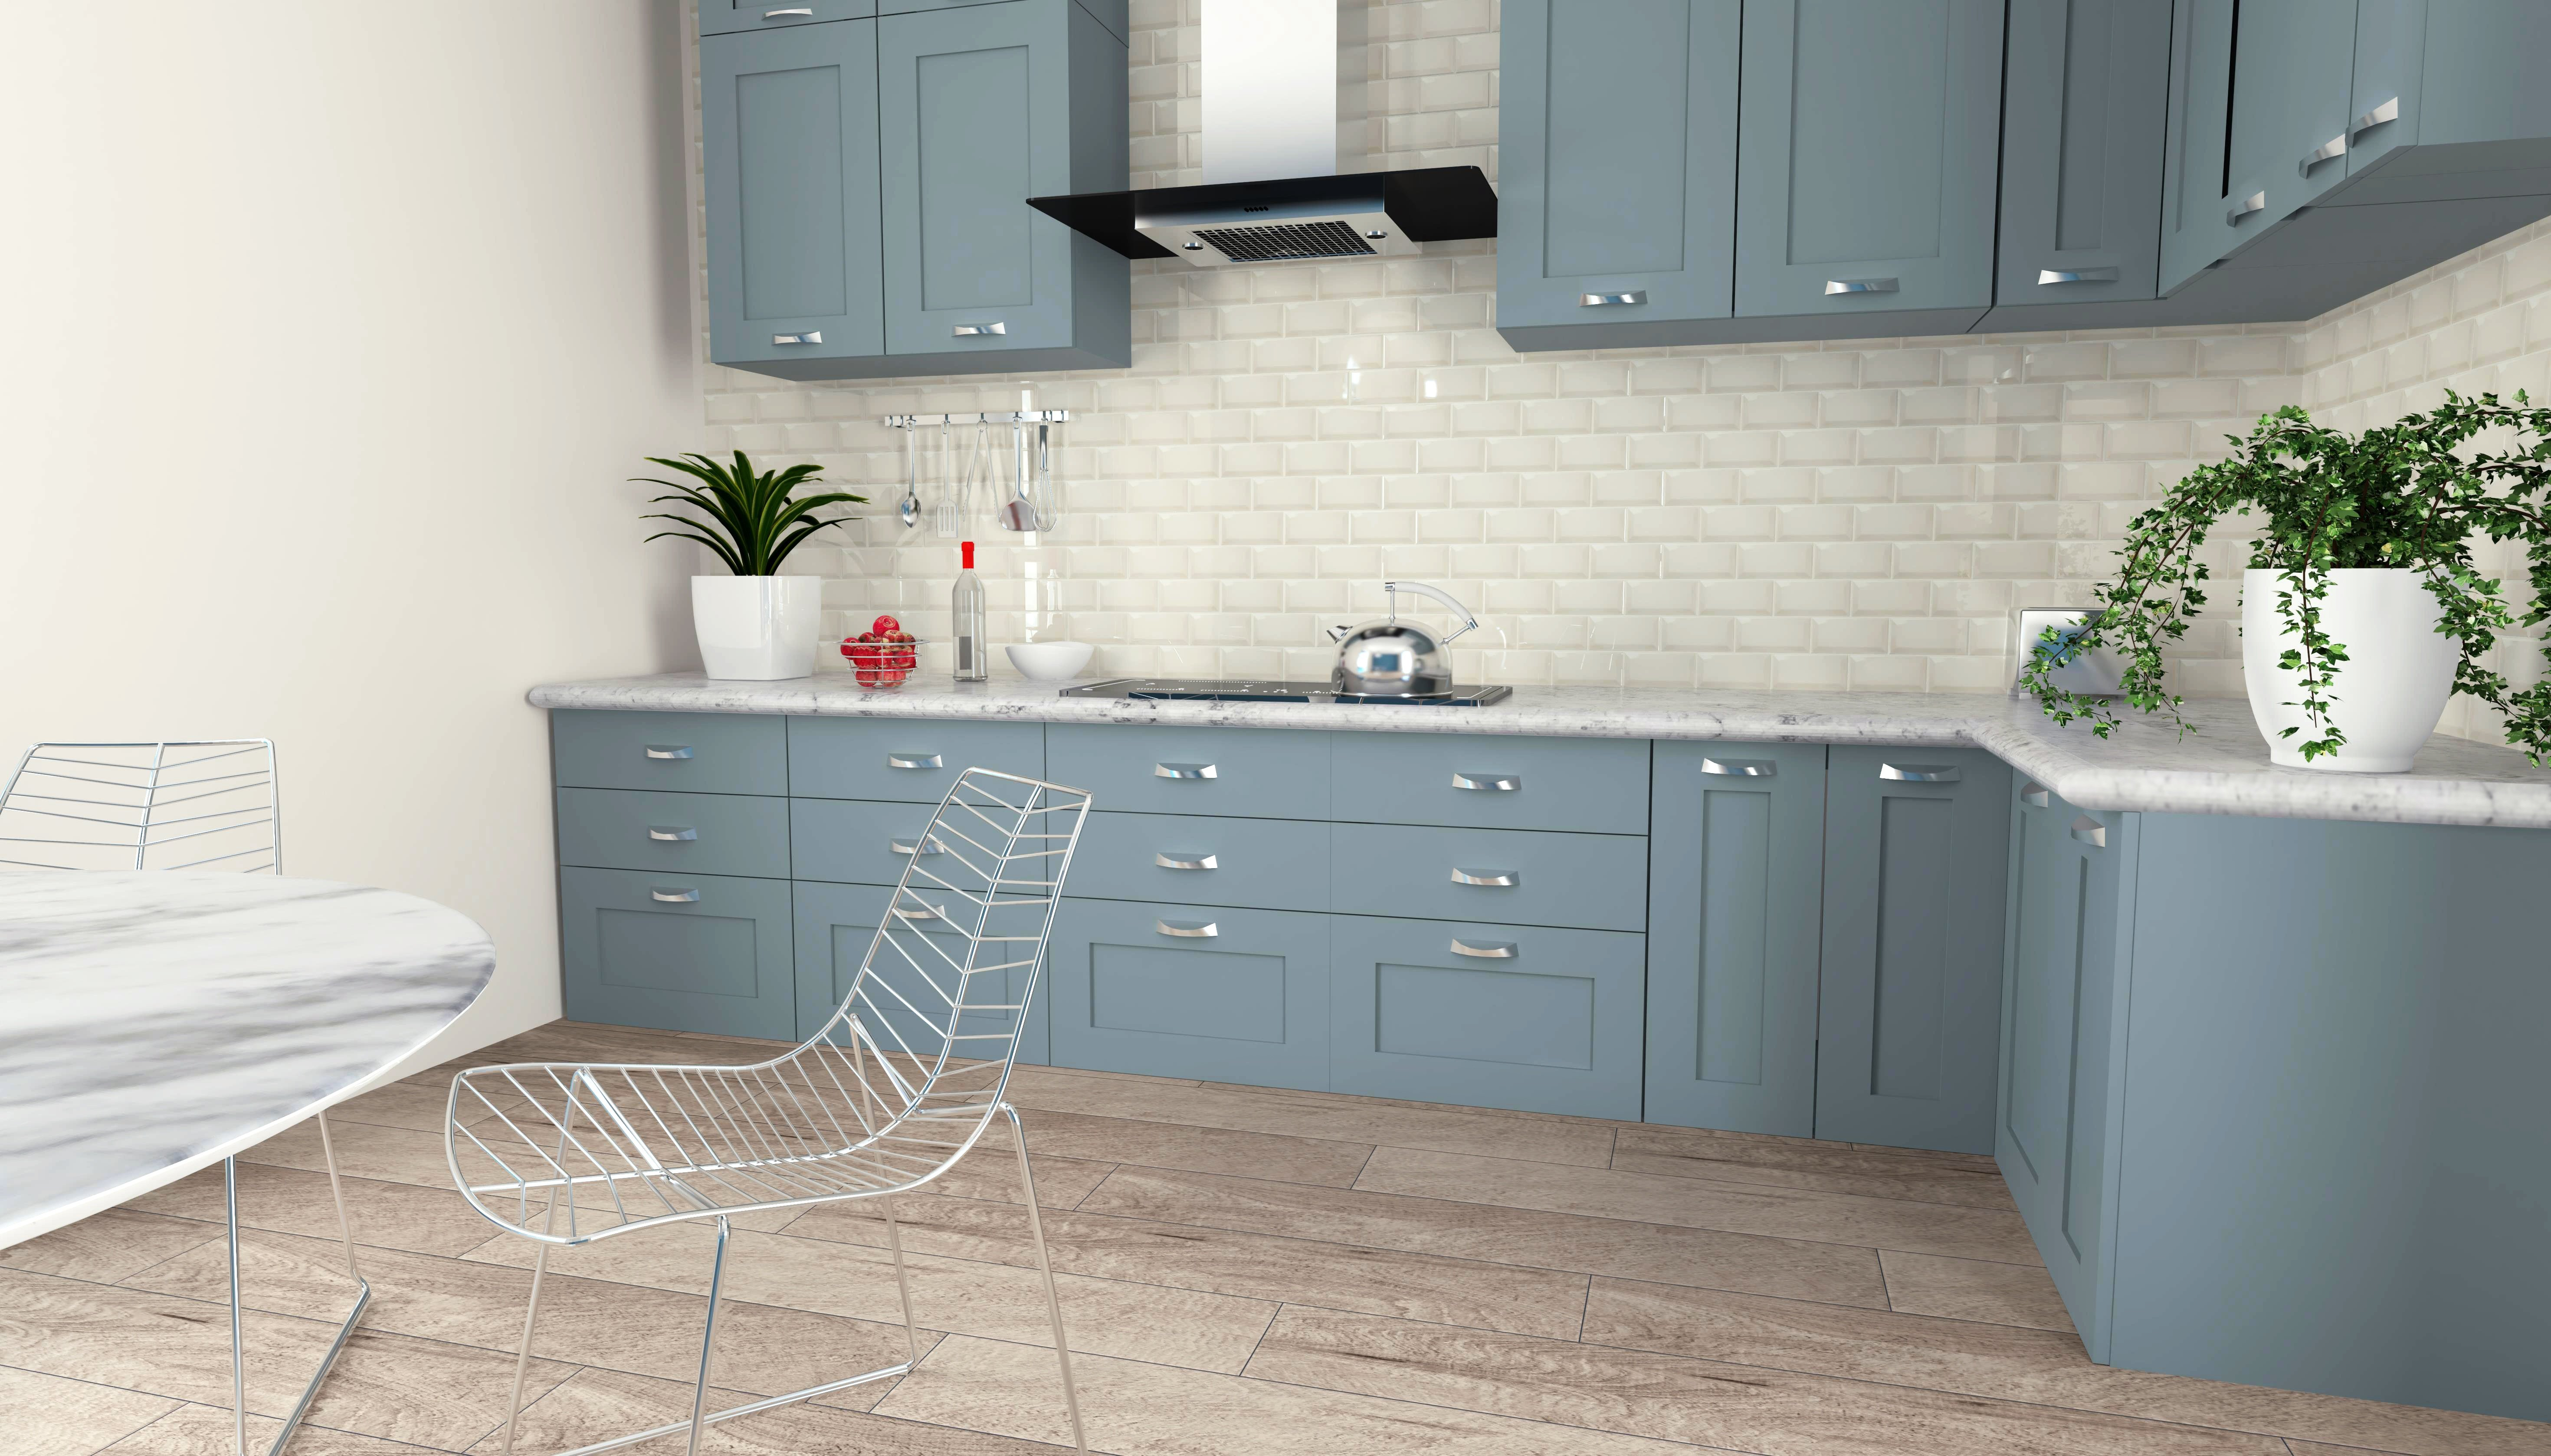 - Play With The Classic Style Of Biscuit Subway Tiles